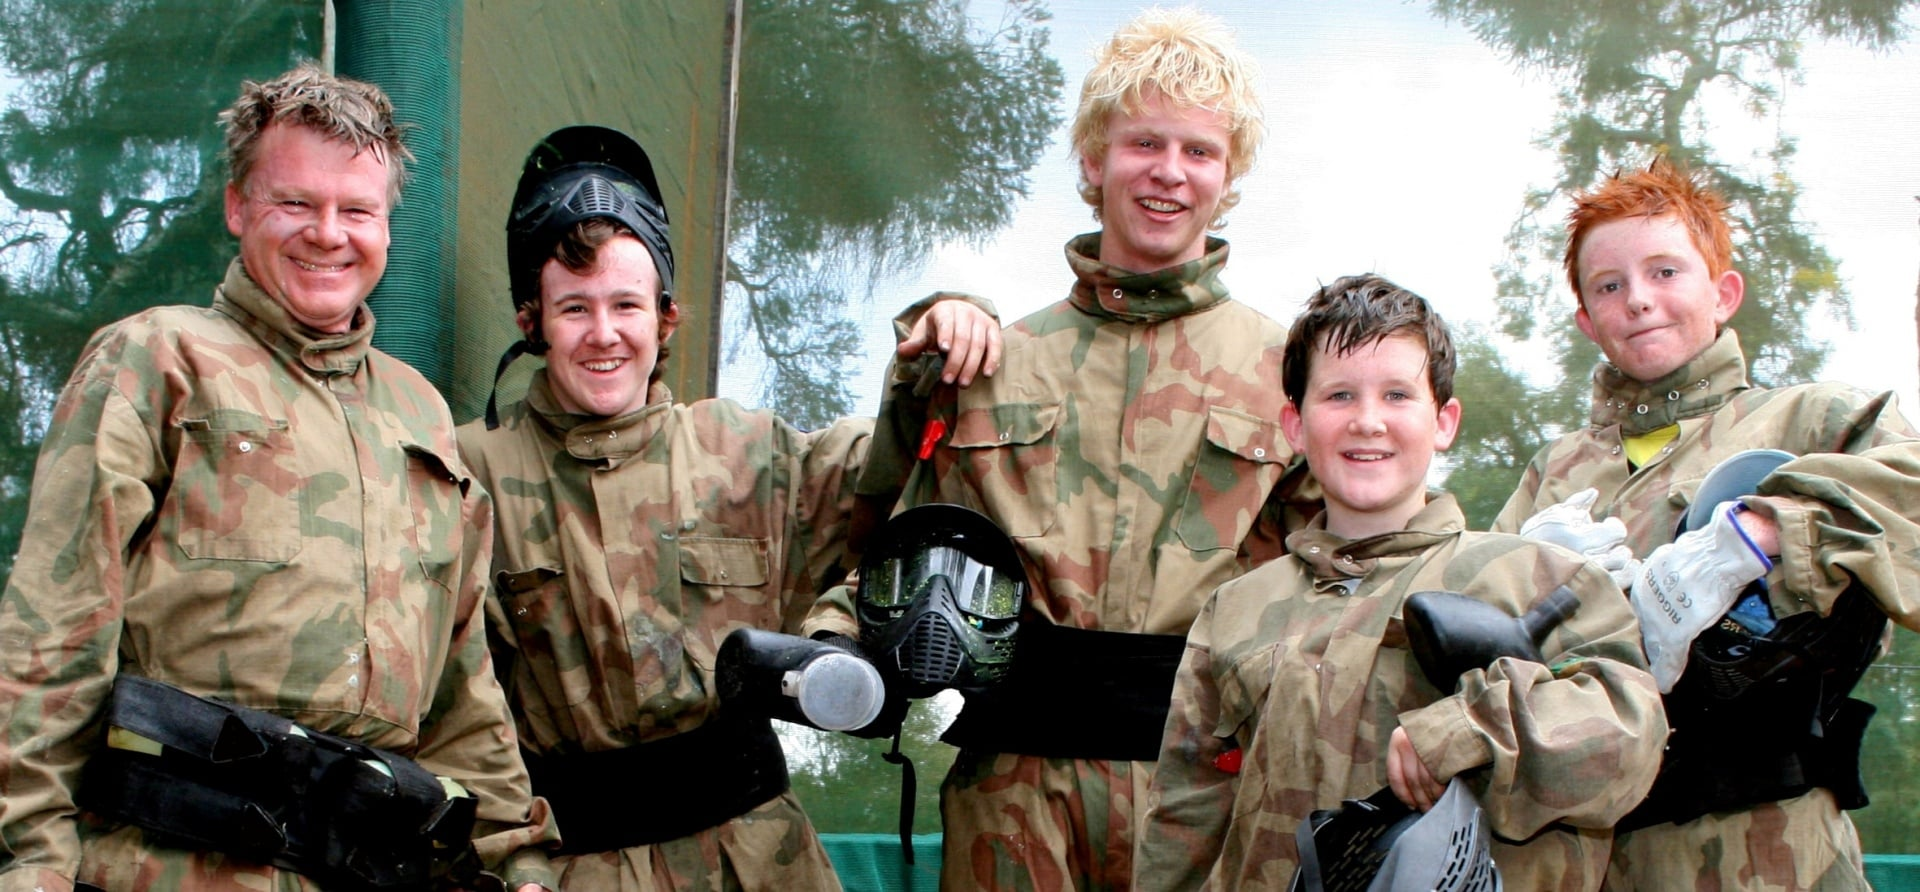 Full Day Paintballing Experience plus 100 Paintballs pp-10